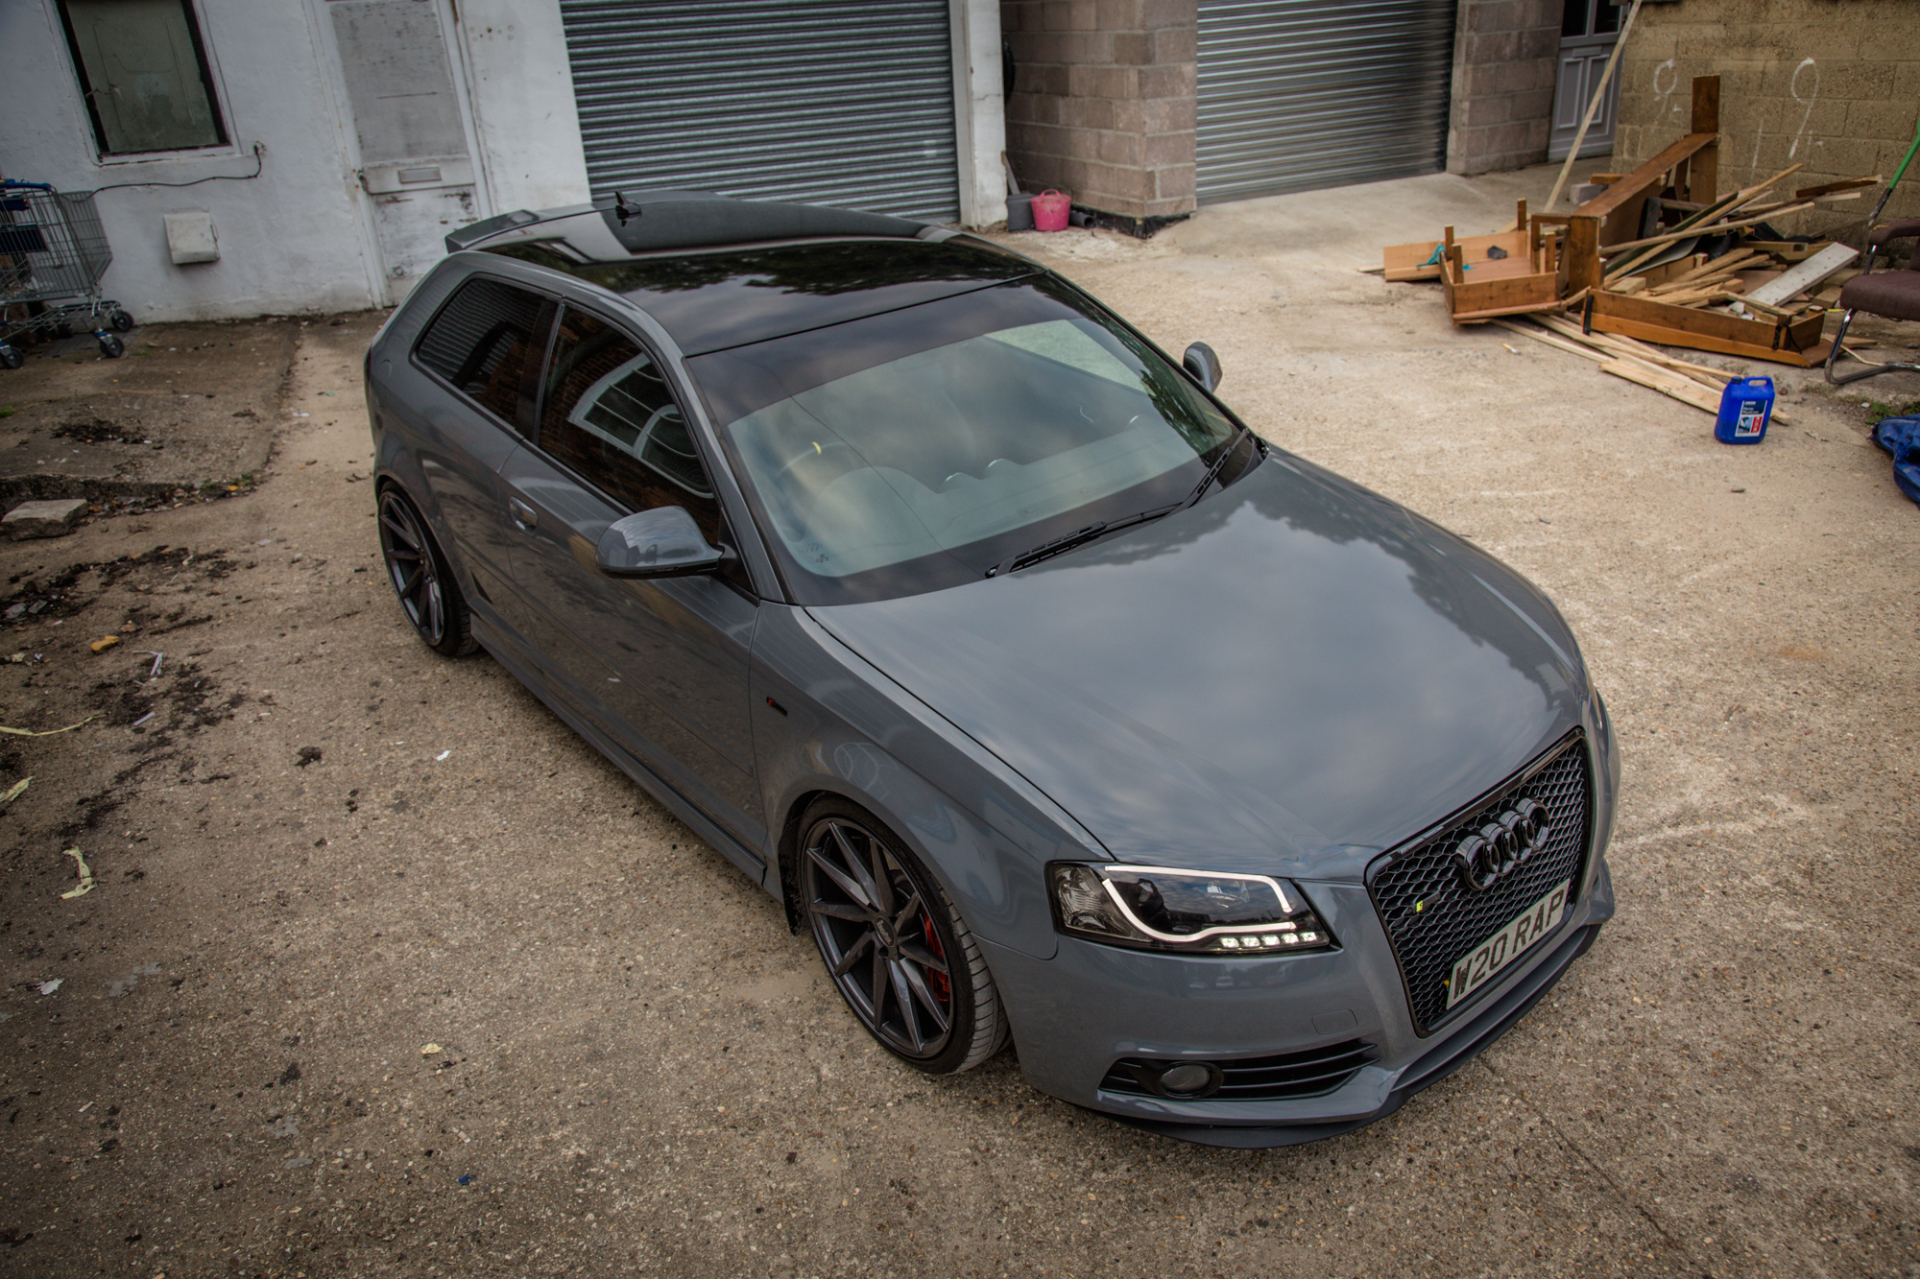 Audi A3 Gloss dark grey wrap